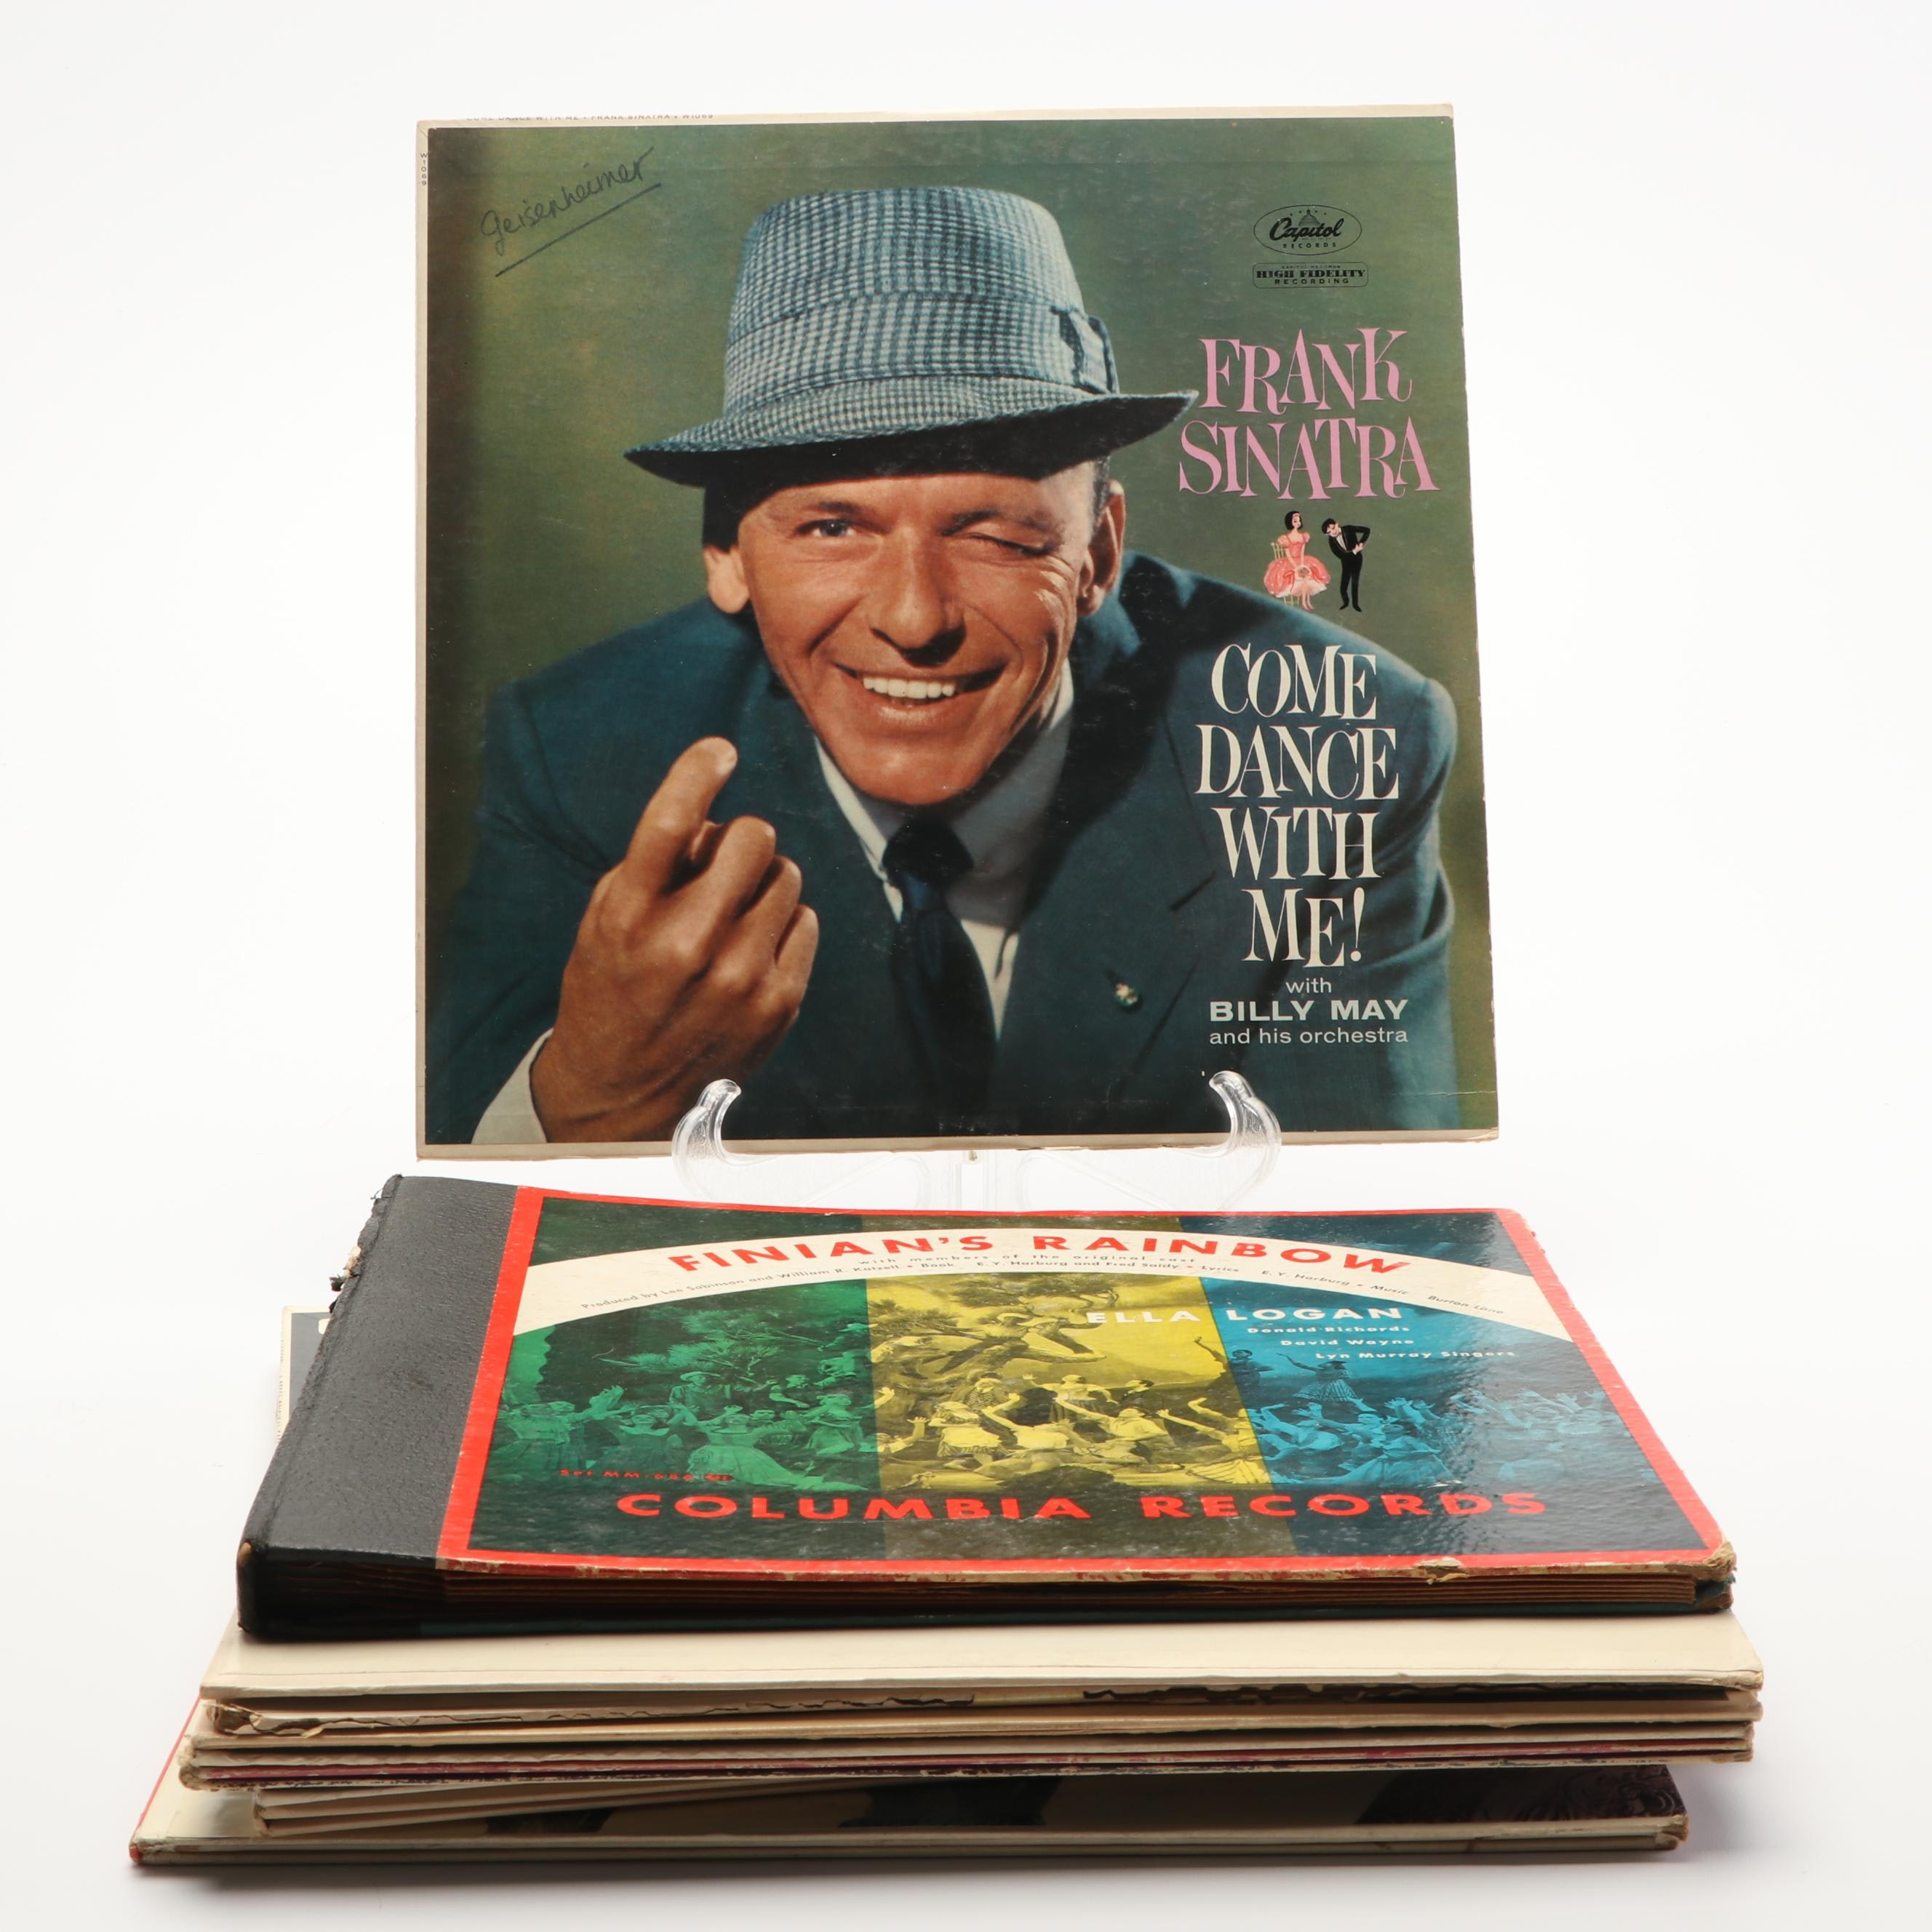 Soundtracks and Musicals with Frank Sinatra and Other Records